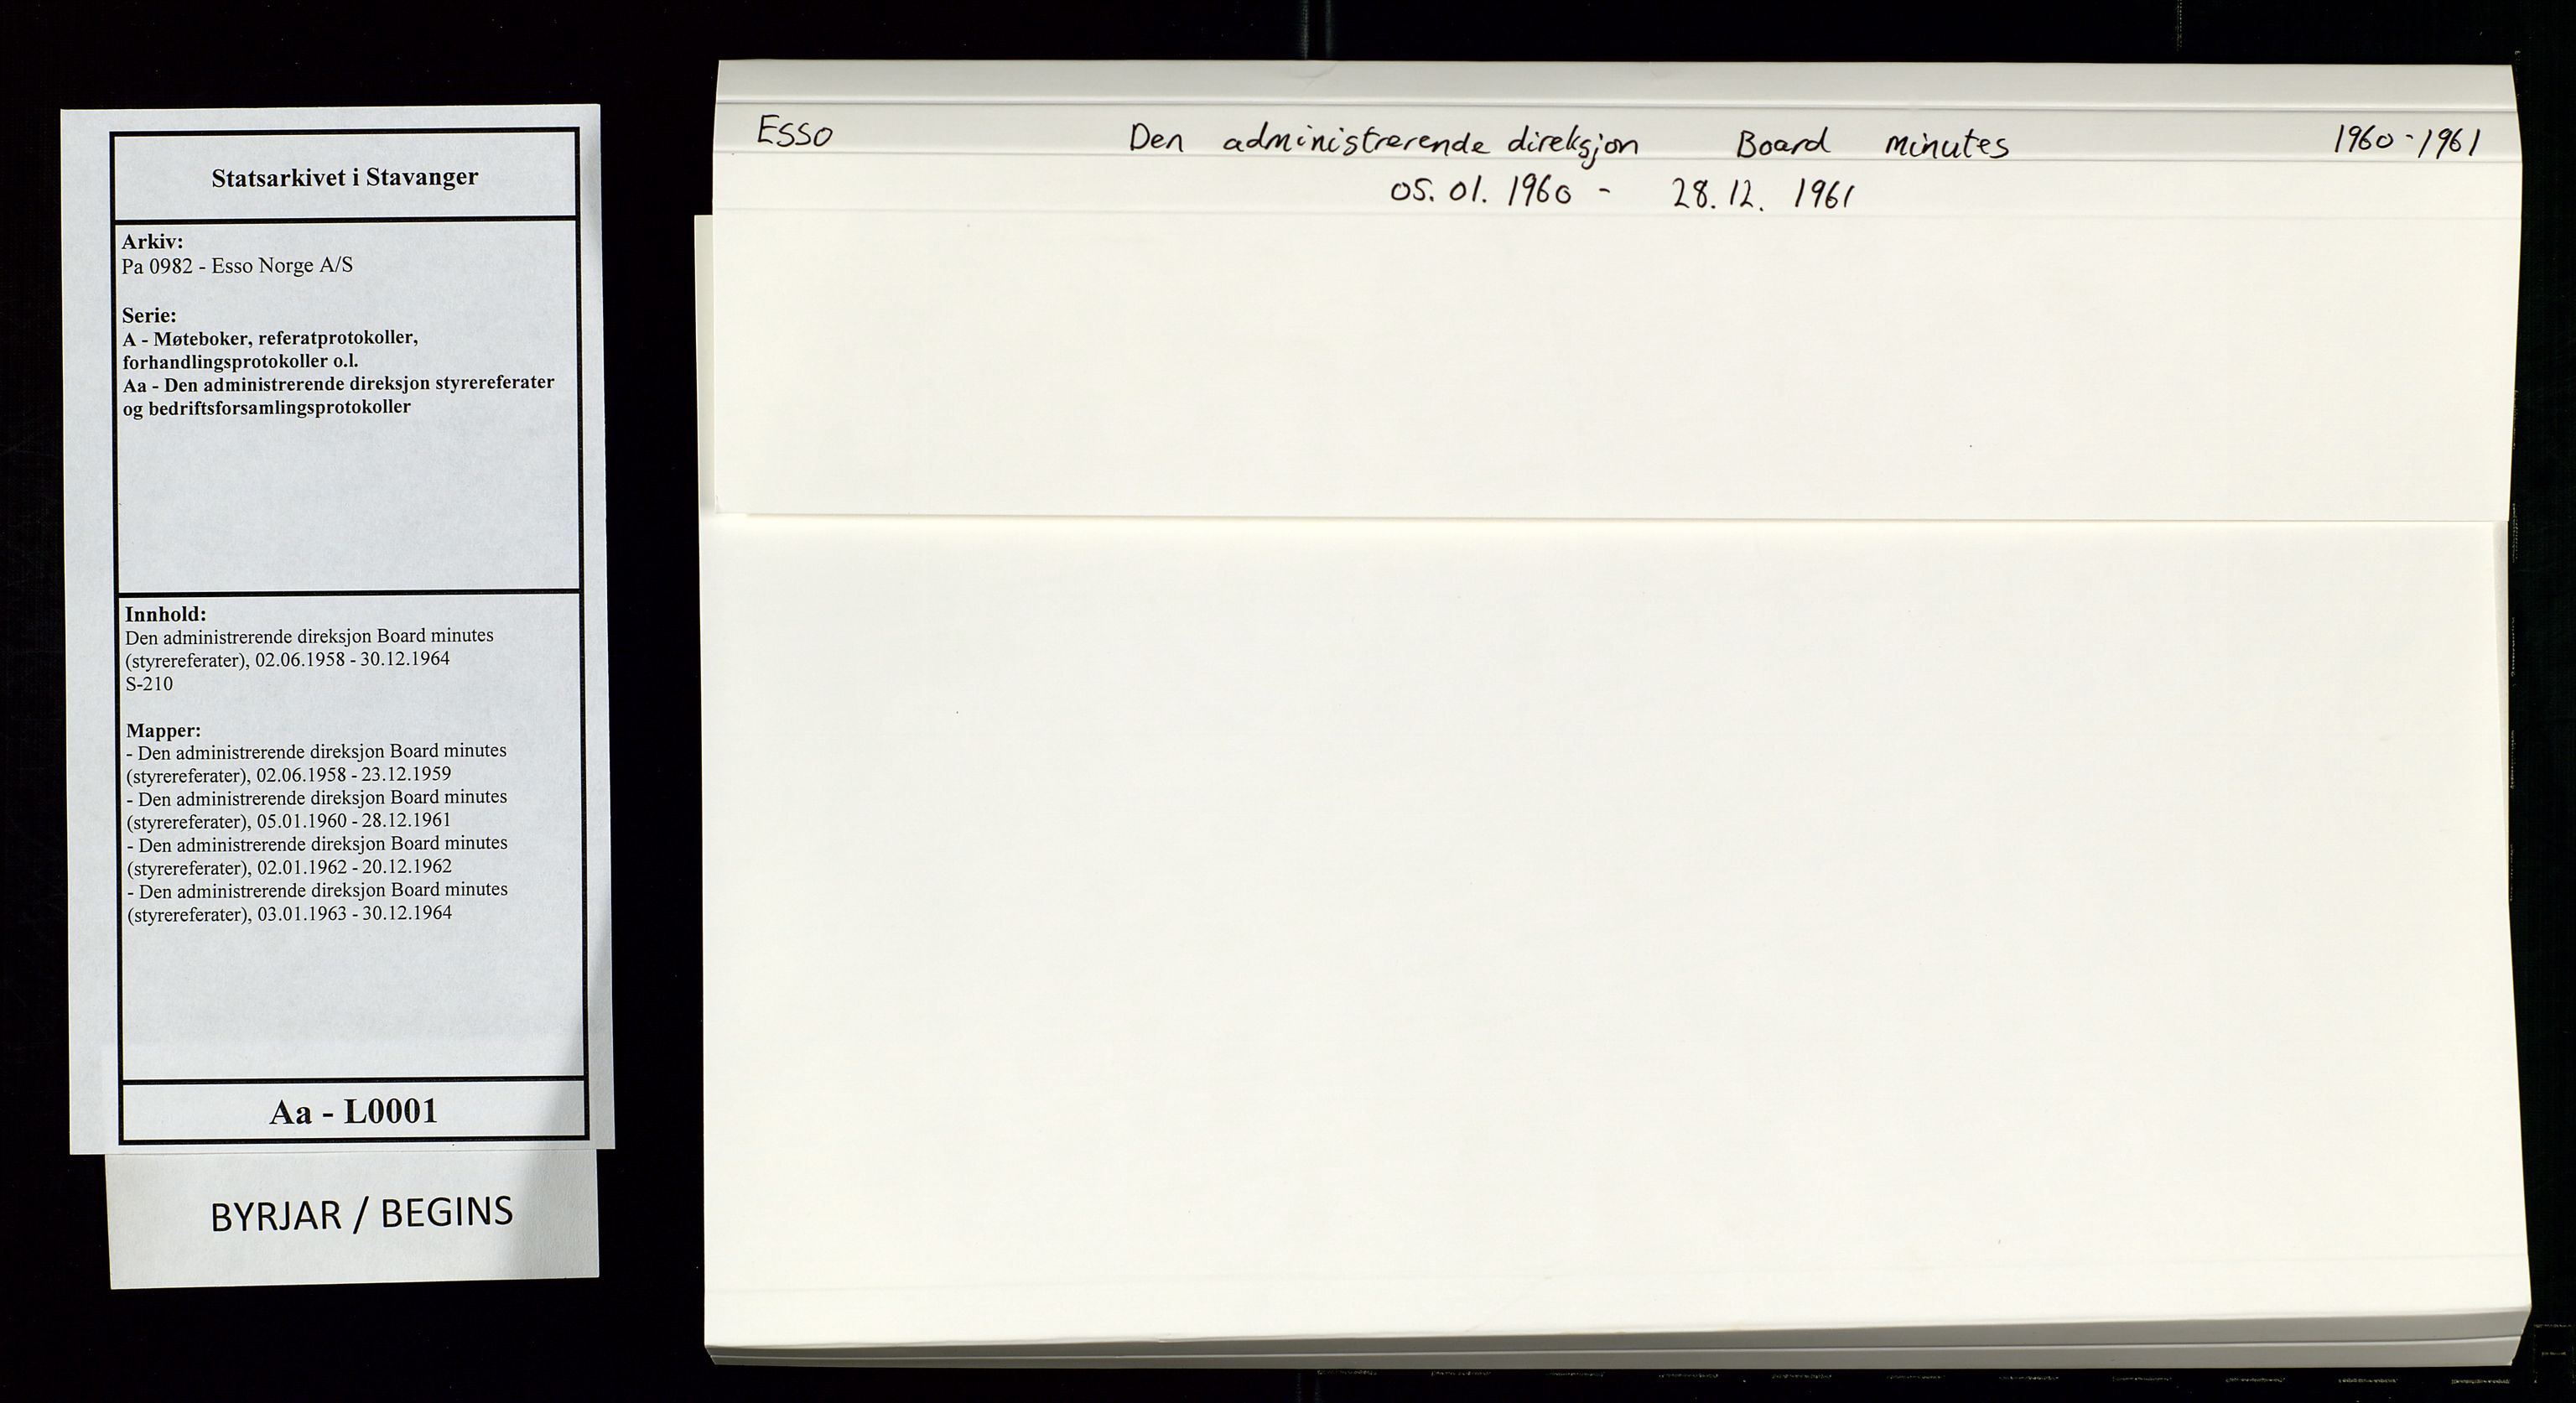 SAST, Pa 0982 - Esso Norge A/S, A/Aa/L0001: Den administrerende direksjon Board minutes (styrereferater), 1960-1961, s. 1